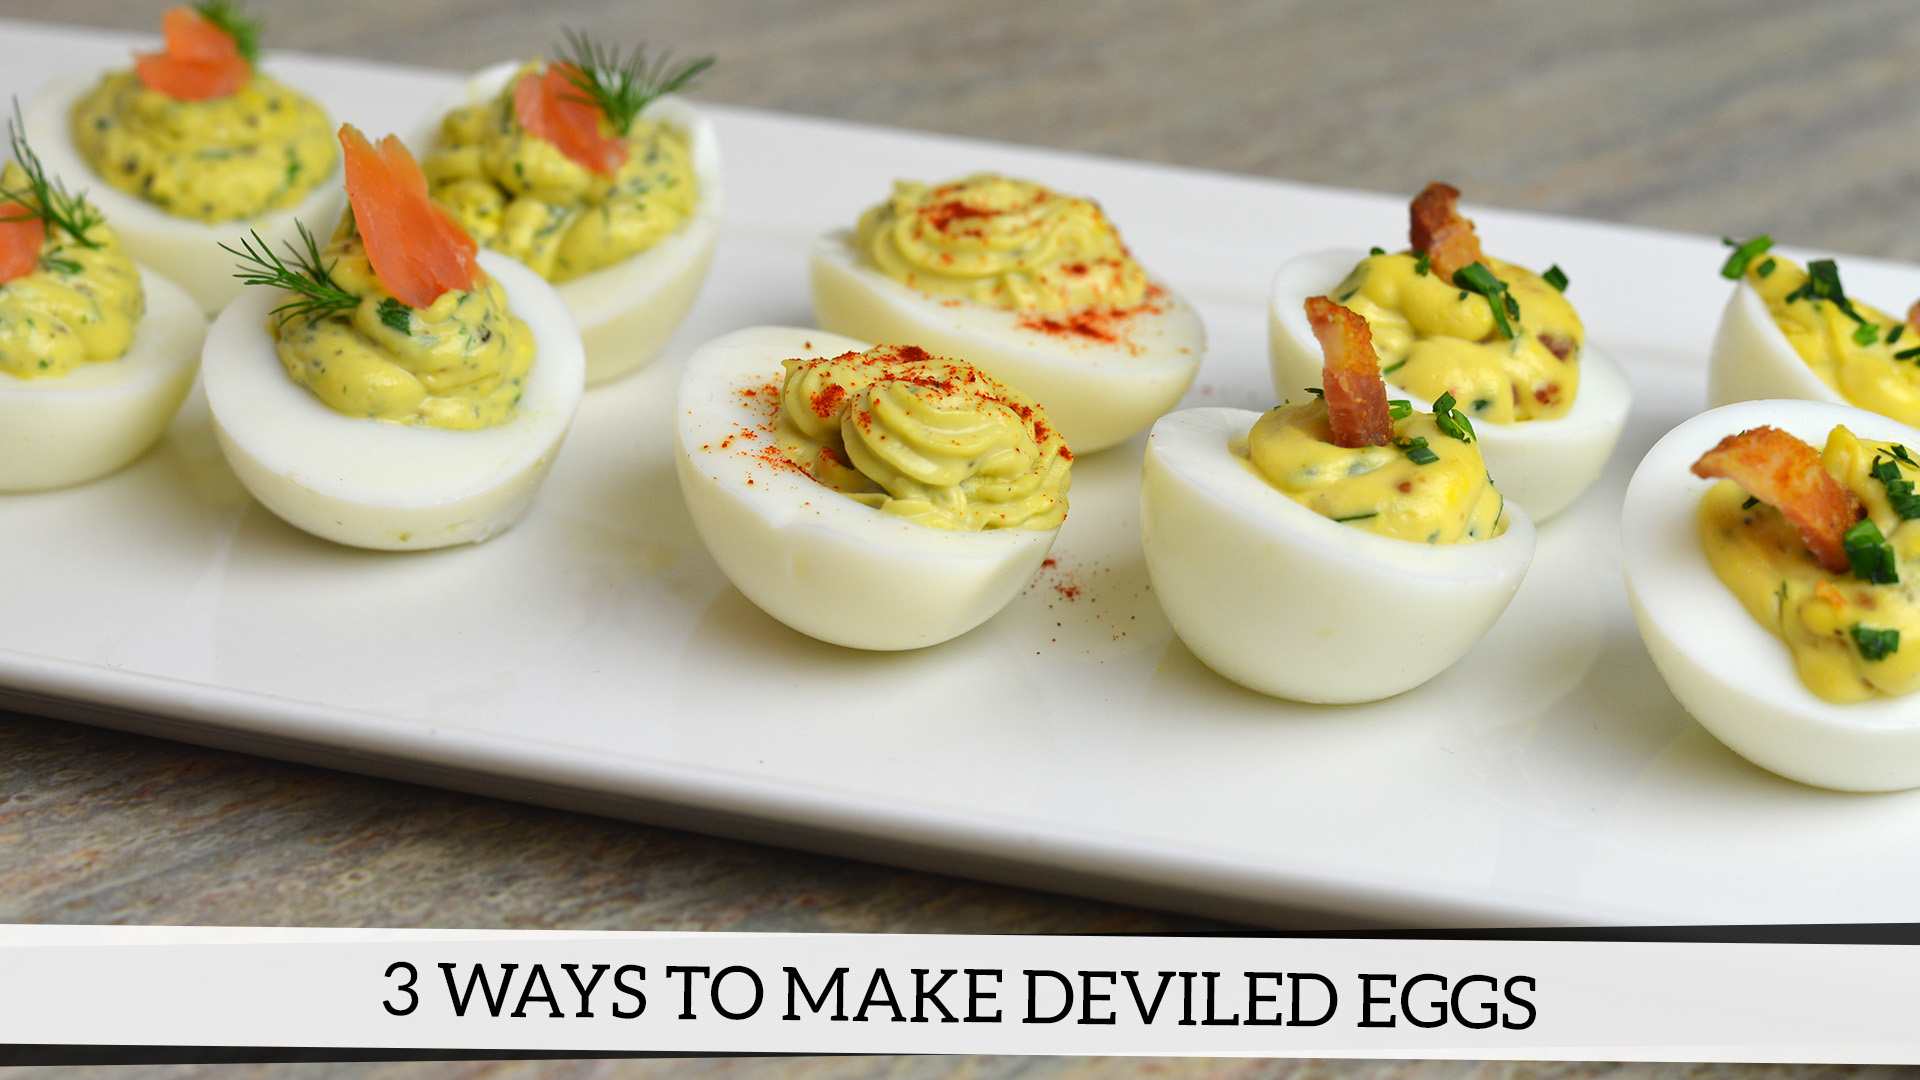 eggs deviled eggs smokey deviled eggs great deviled eggs four ways ...